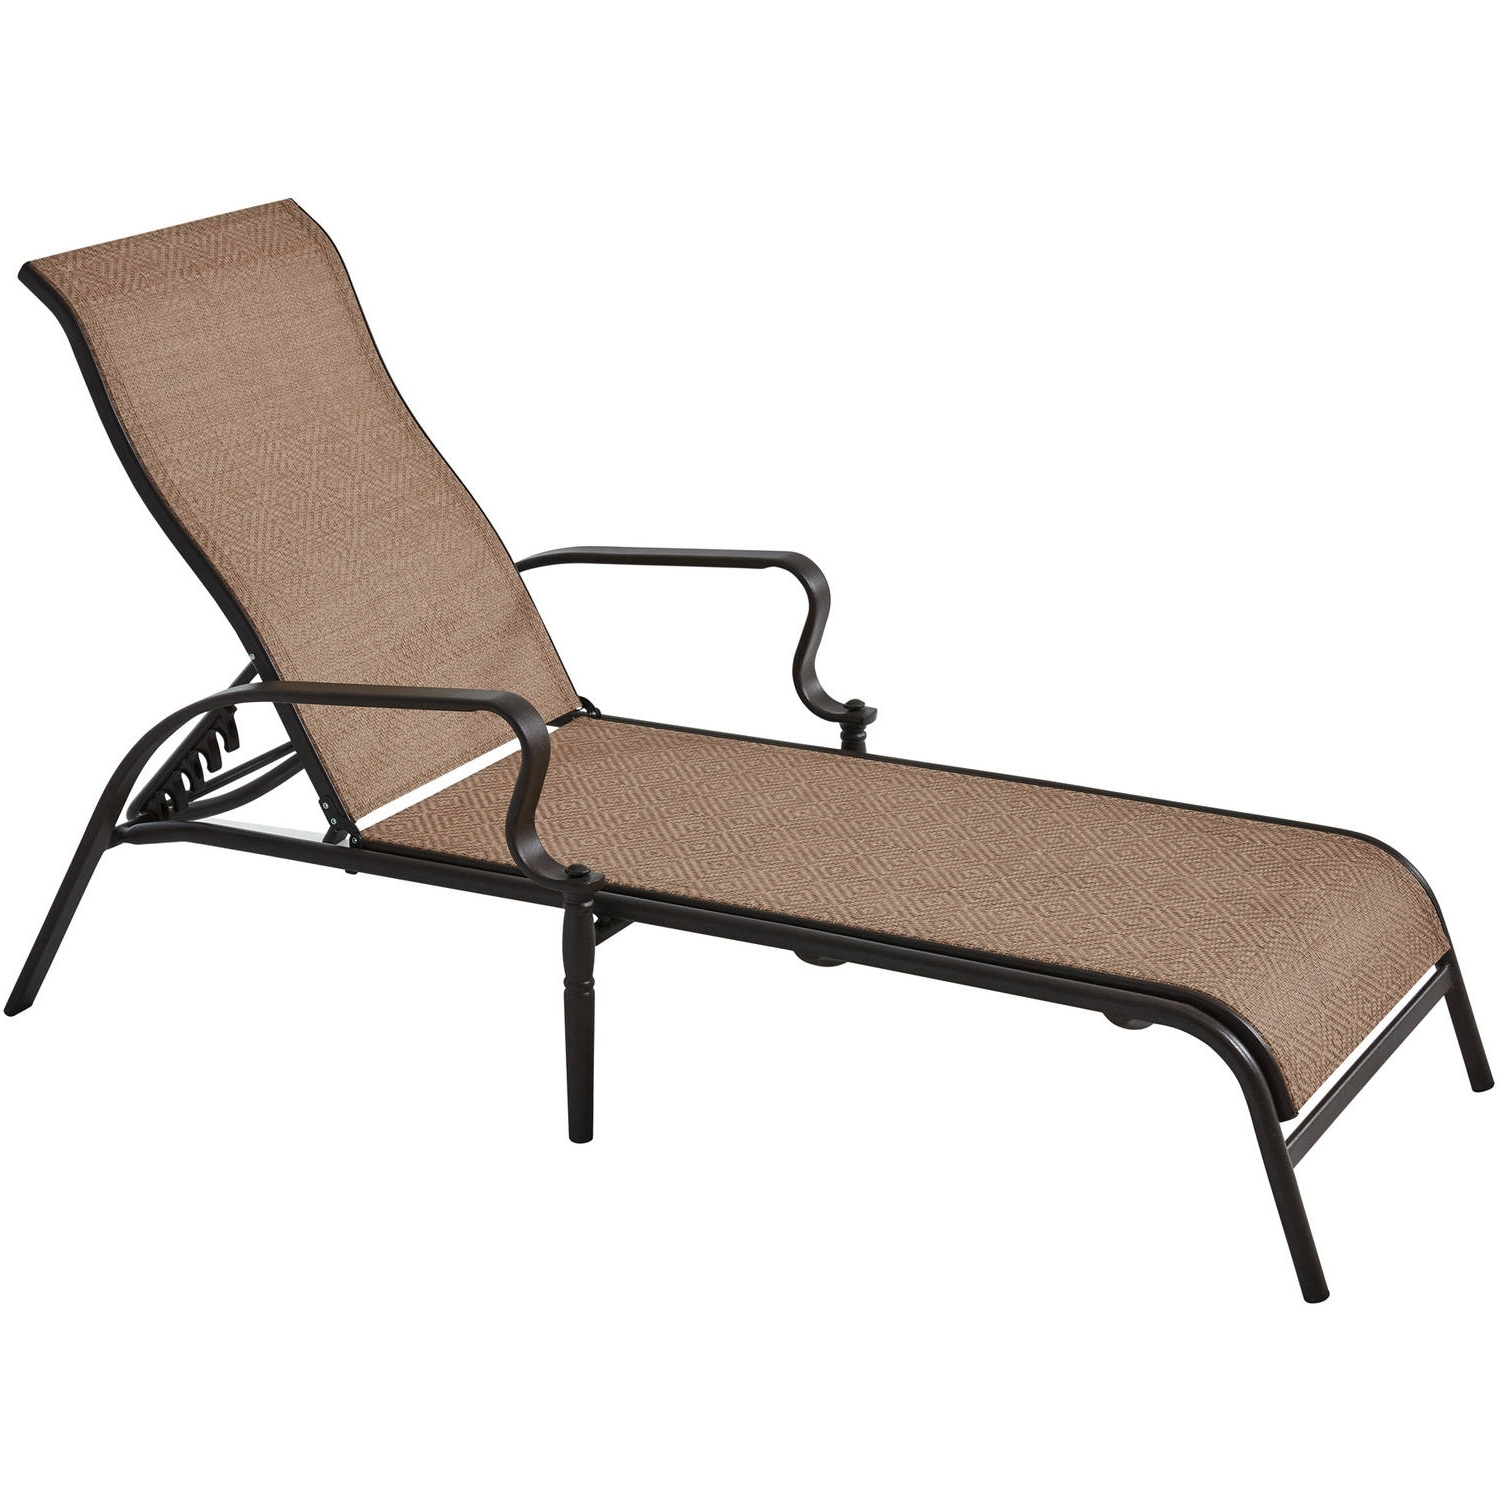 Chaise Lounge Chairs At Sears Inside 2017 Lounge Chair : Patio Chaise Lounge Sale Chaise Furniture Portable (View 4 of 15)